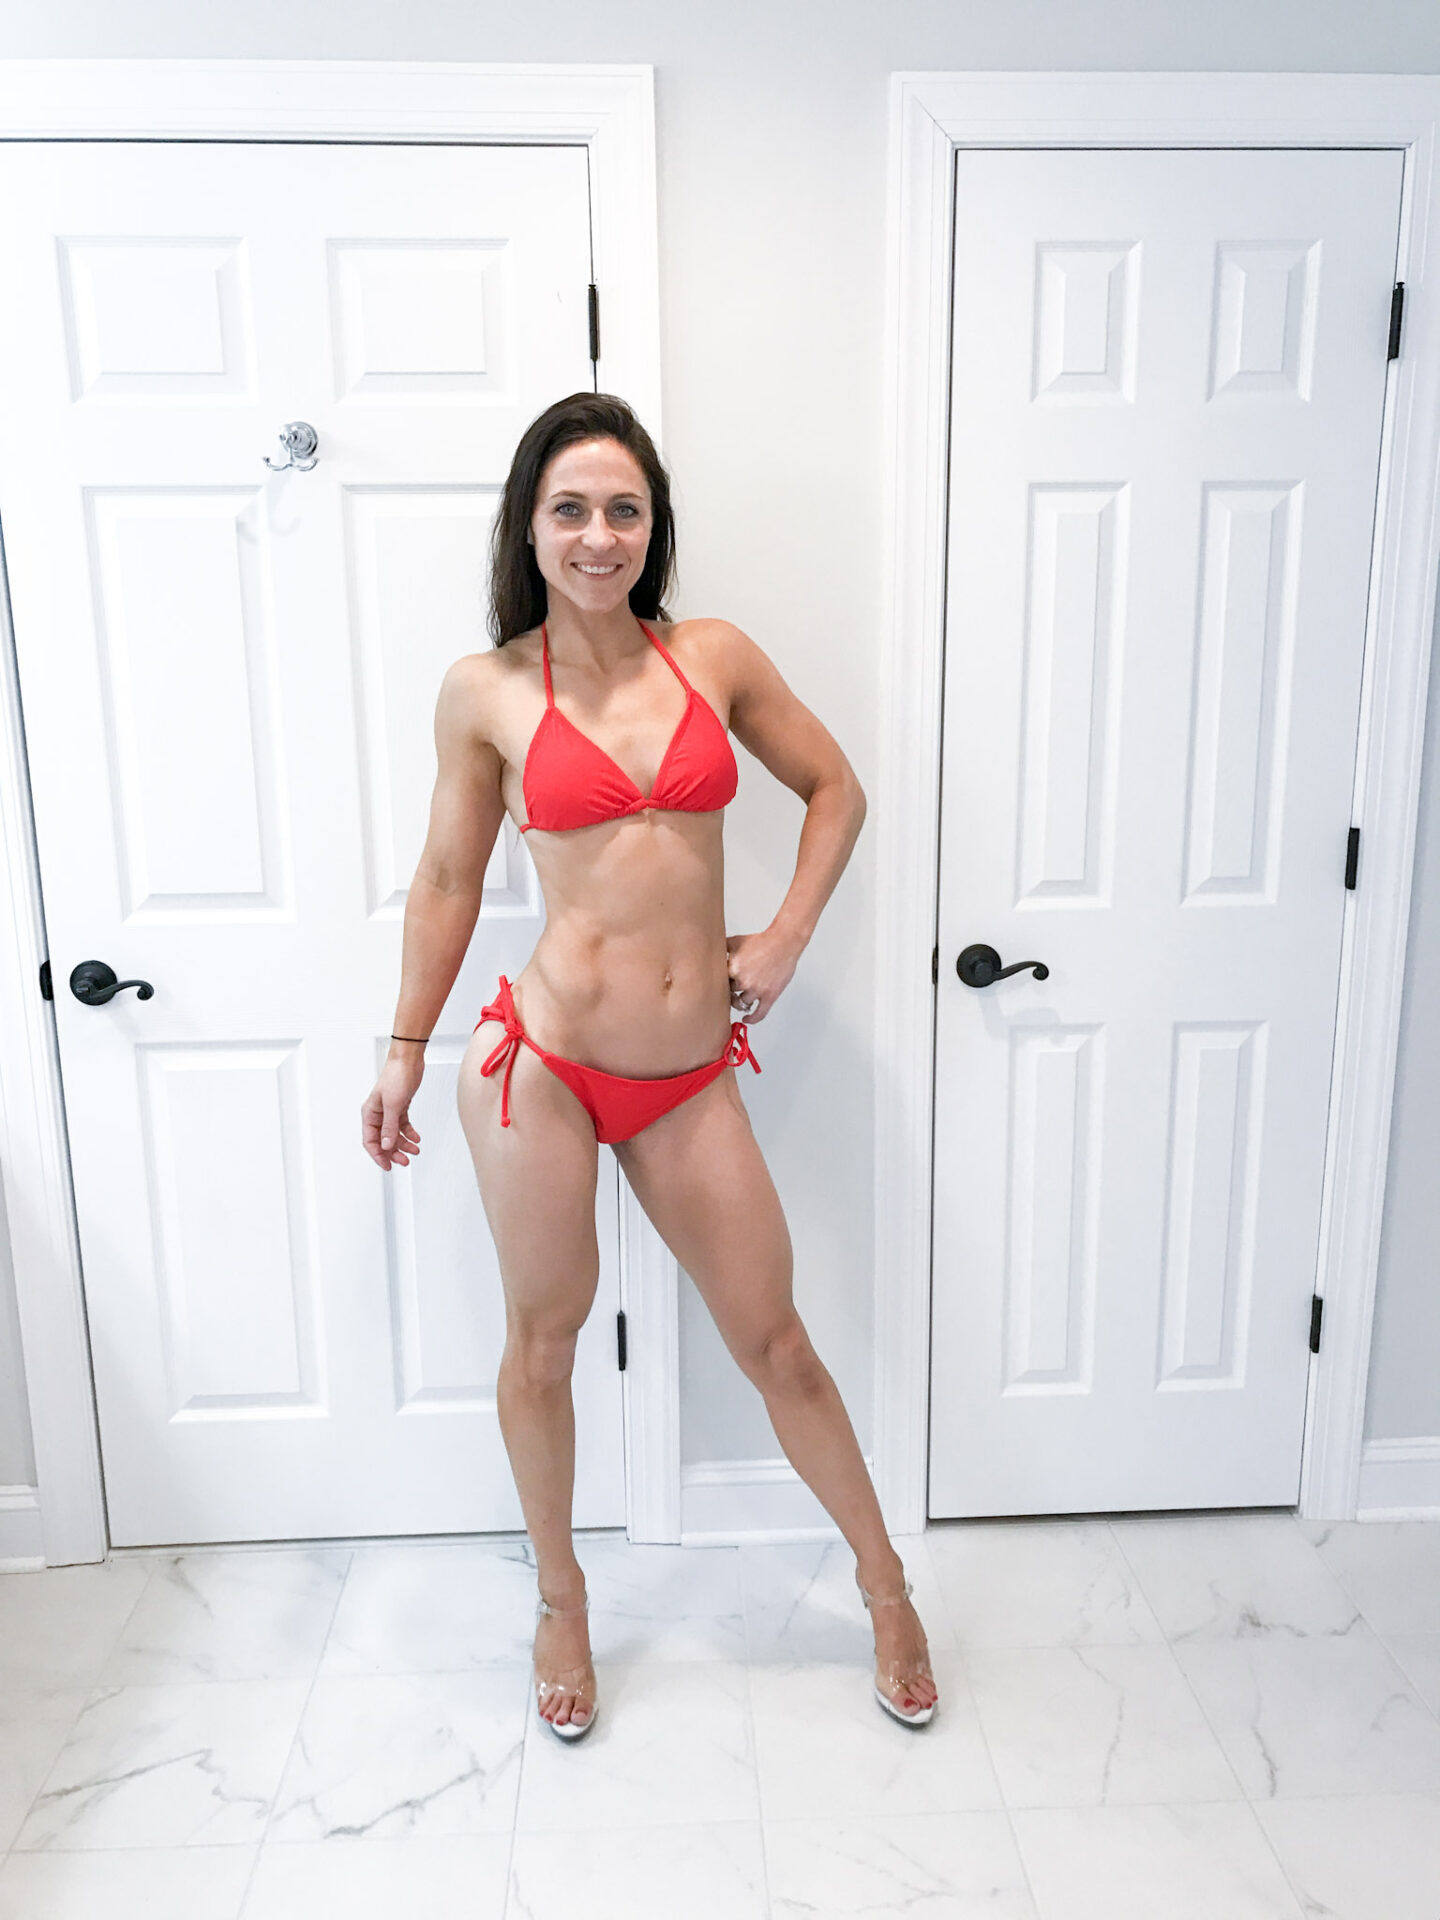 2 weeks out – Competition Prep Progress